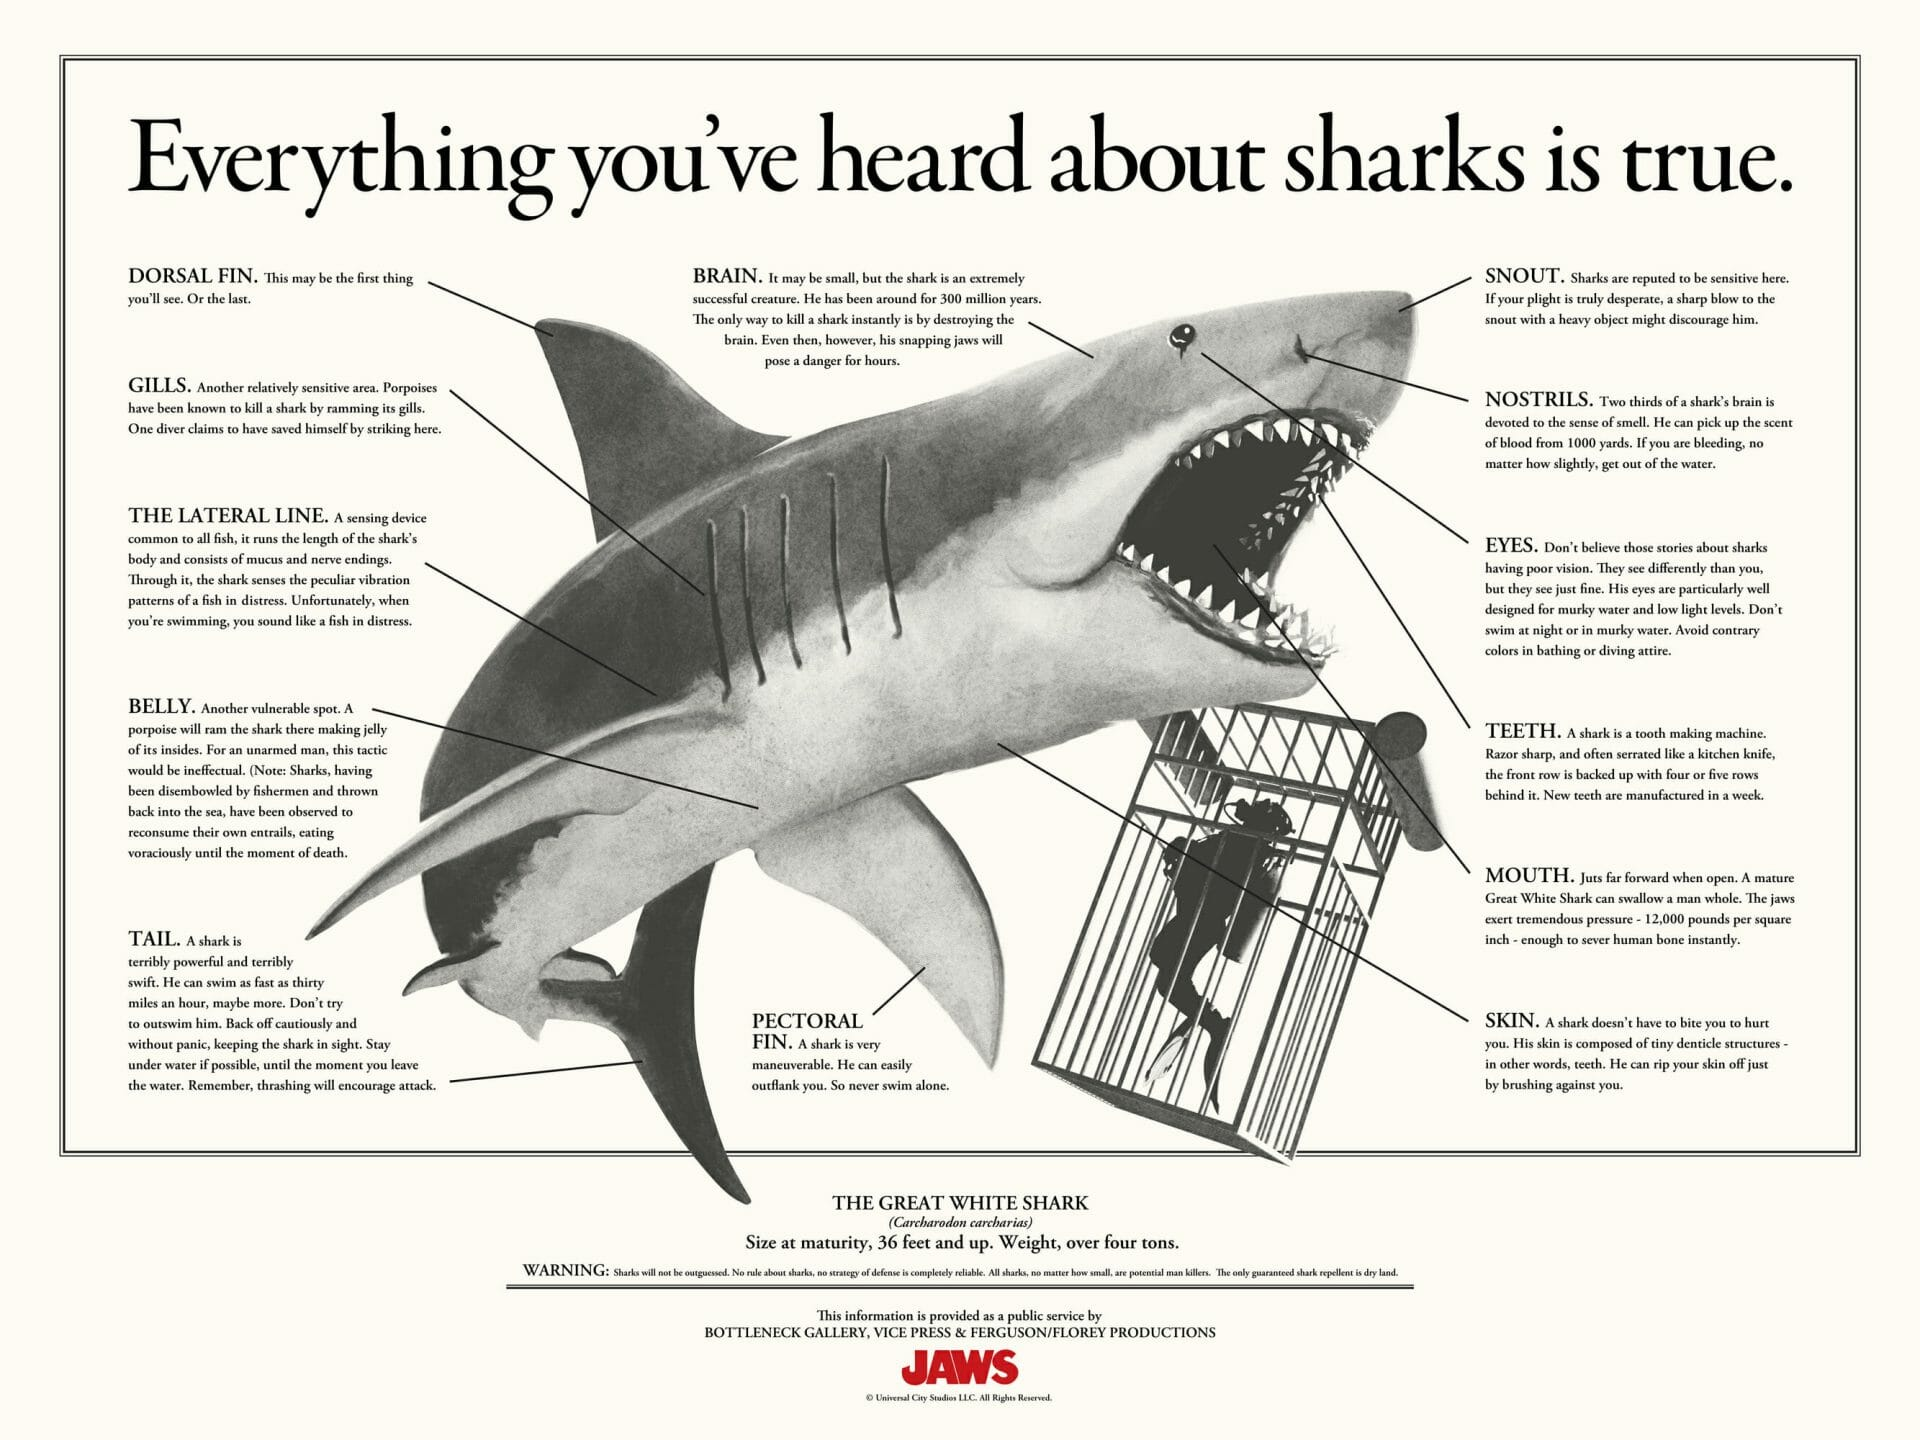 Everything you've heard about sharks is true